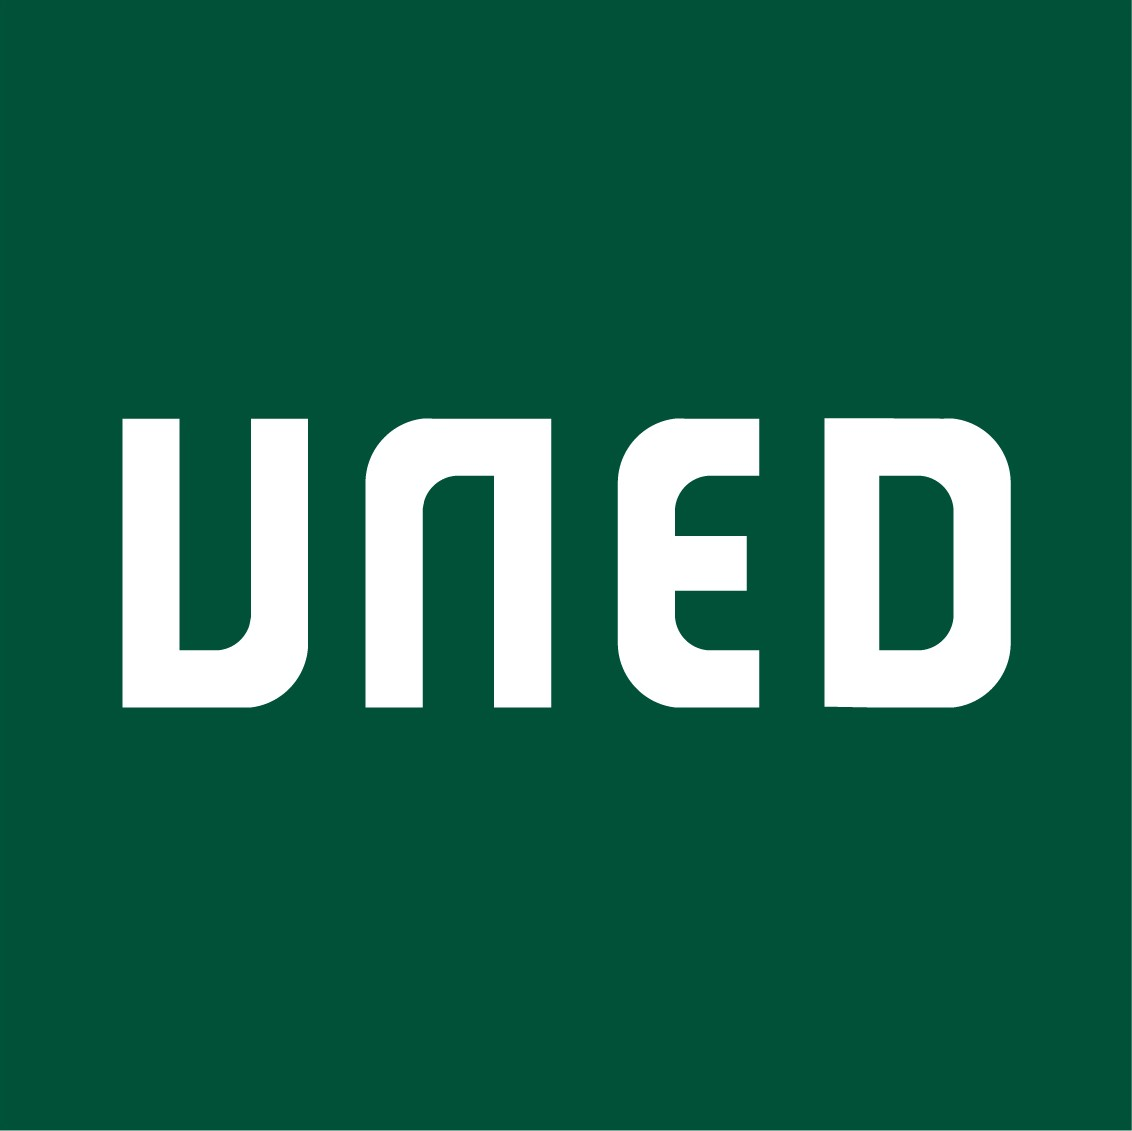 UNED Logo National University of Distance Education